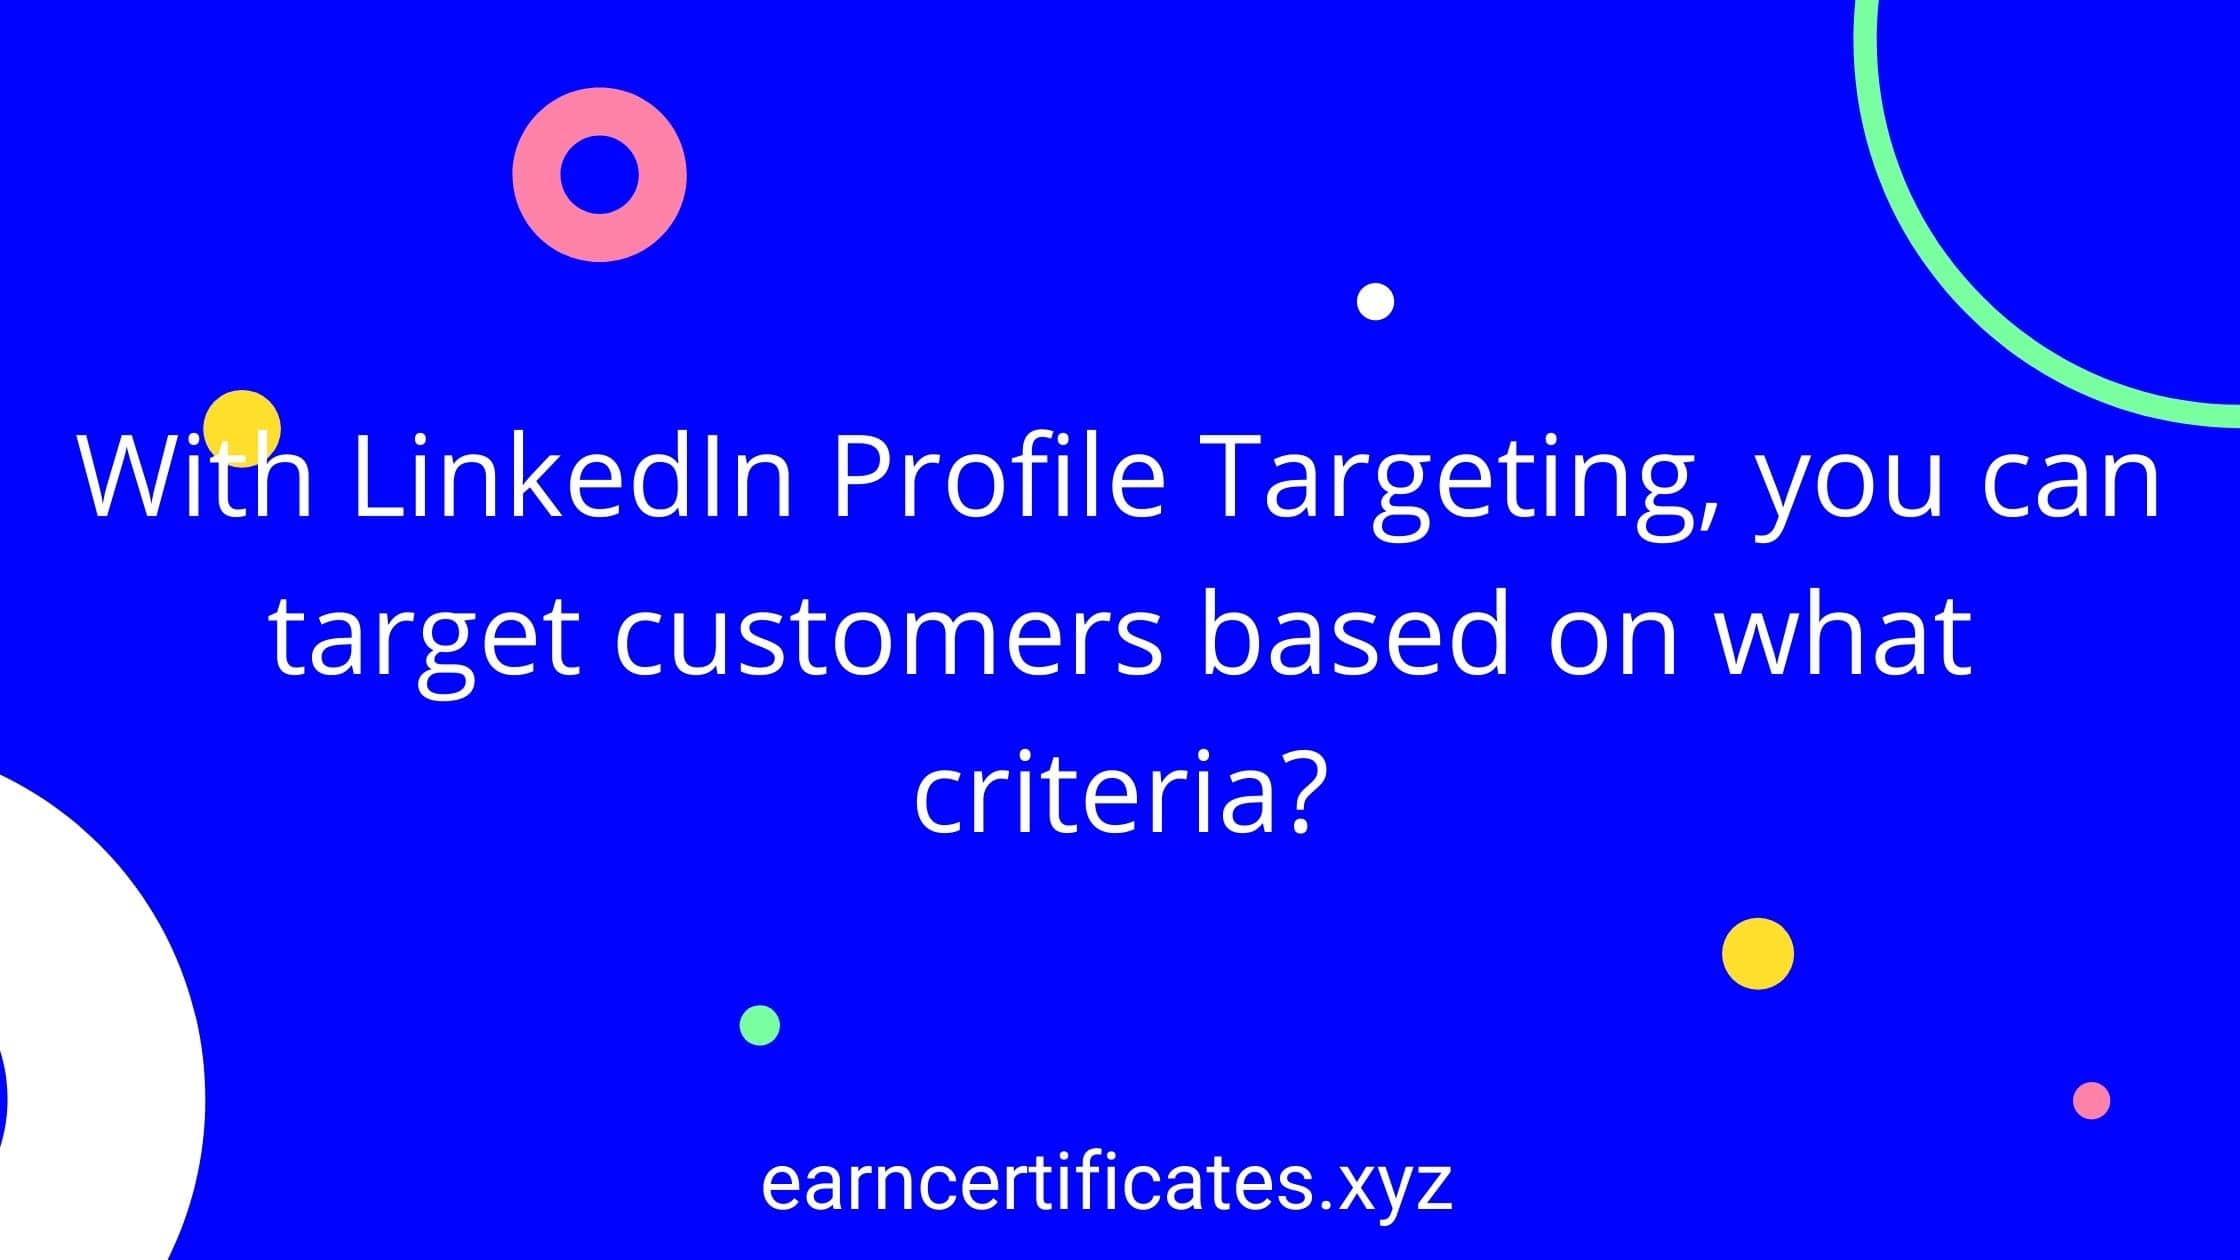 With LinkedIn Profile Targeting, you can target customers based on what criteria?